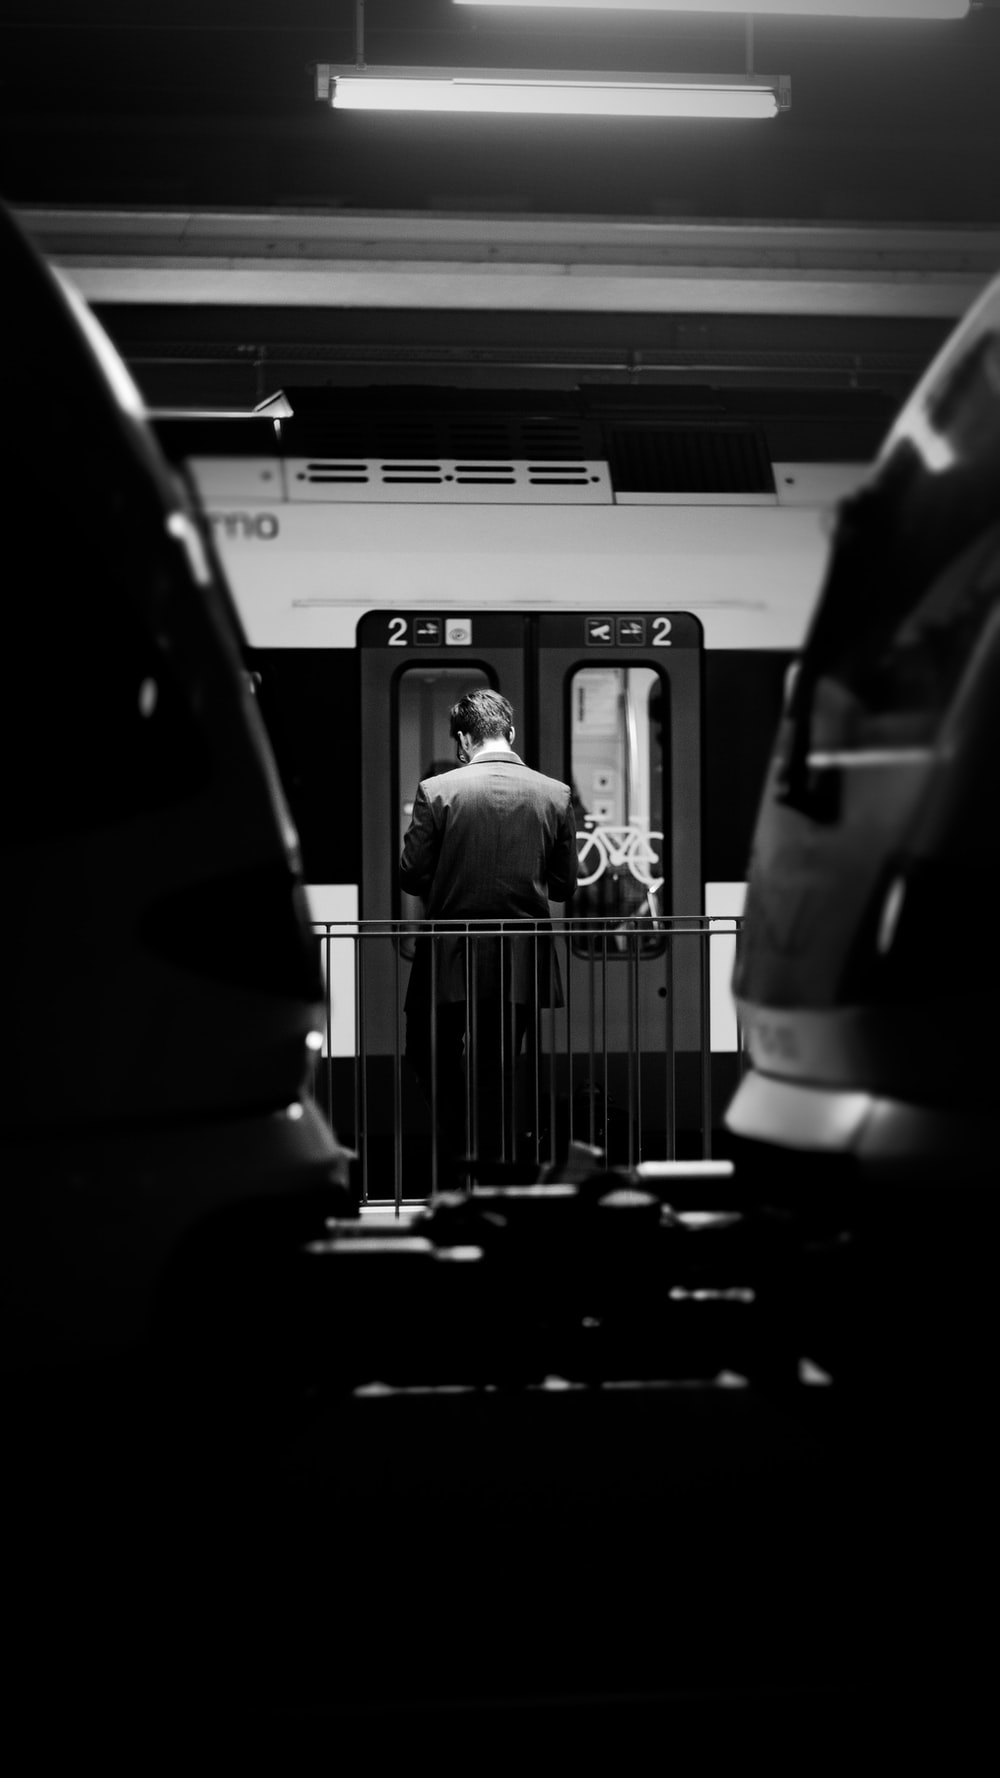 gray-scale photo of man entering train